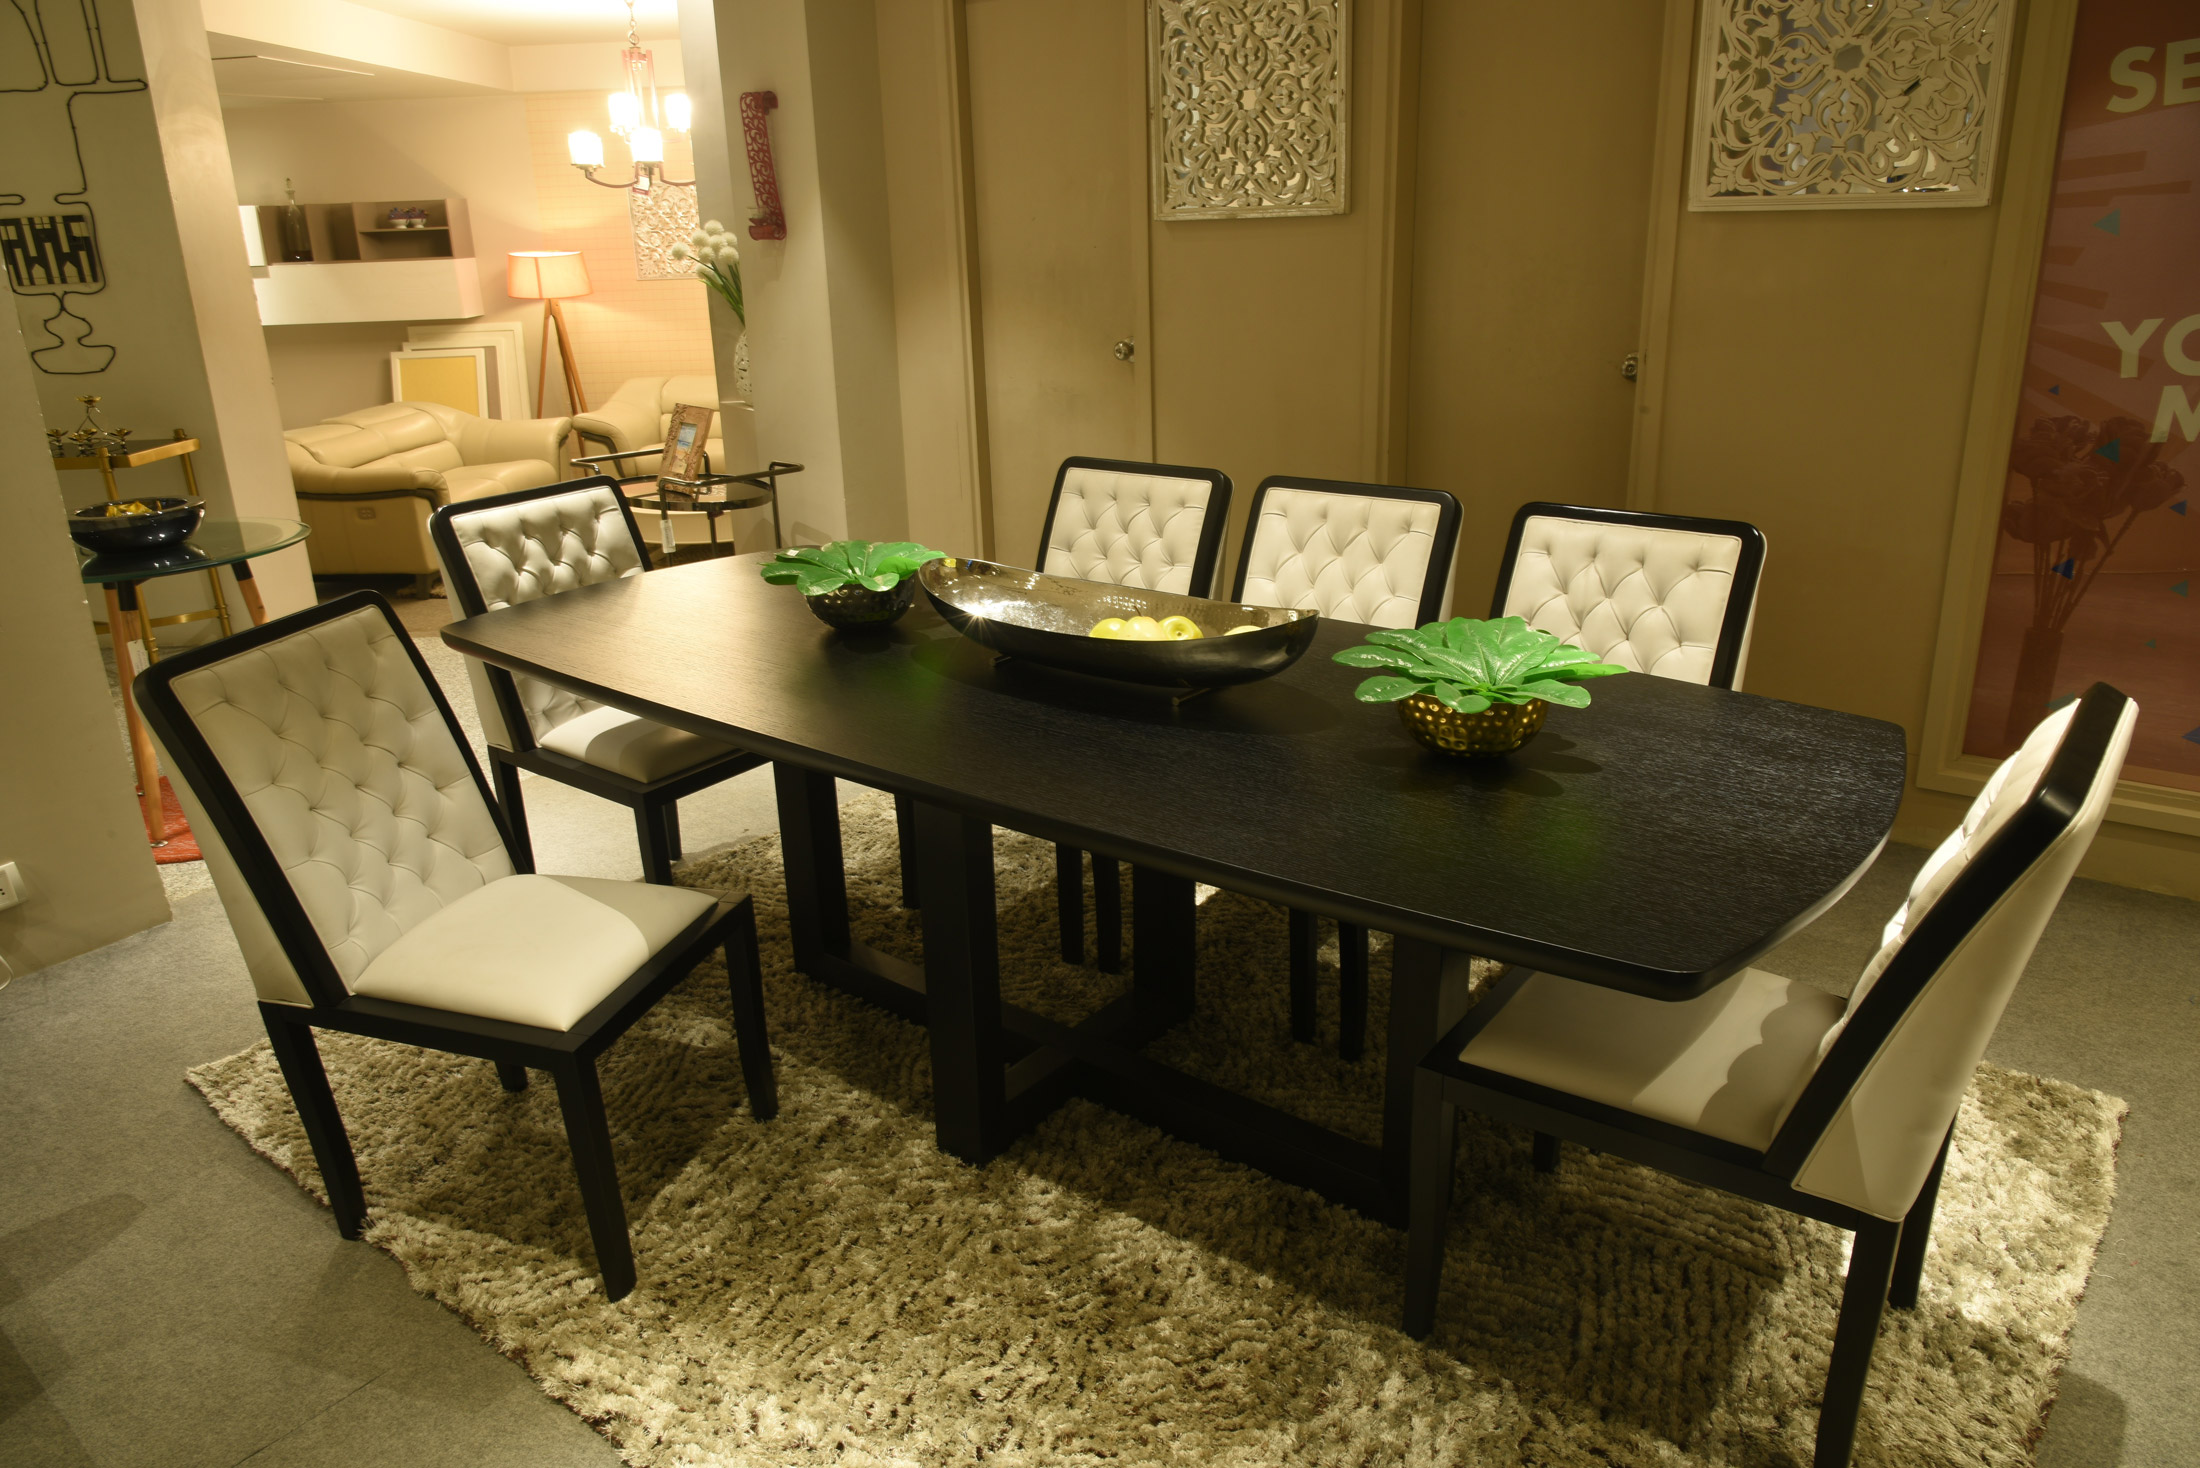 Dining room furniture for studio apartments in kirti nagar new delhi